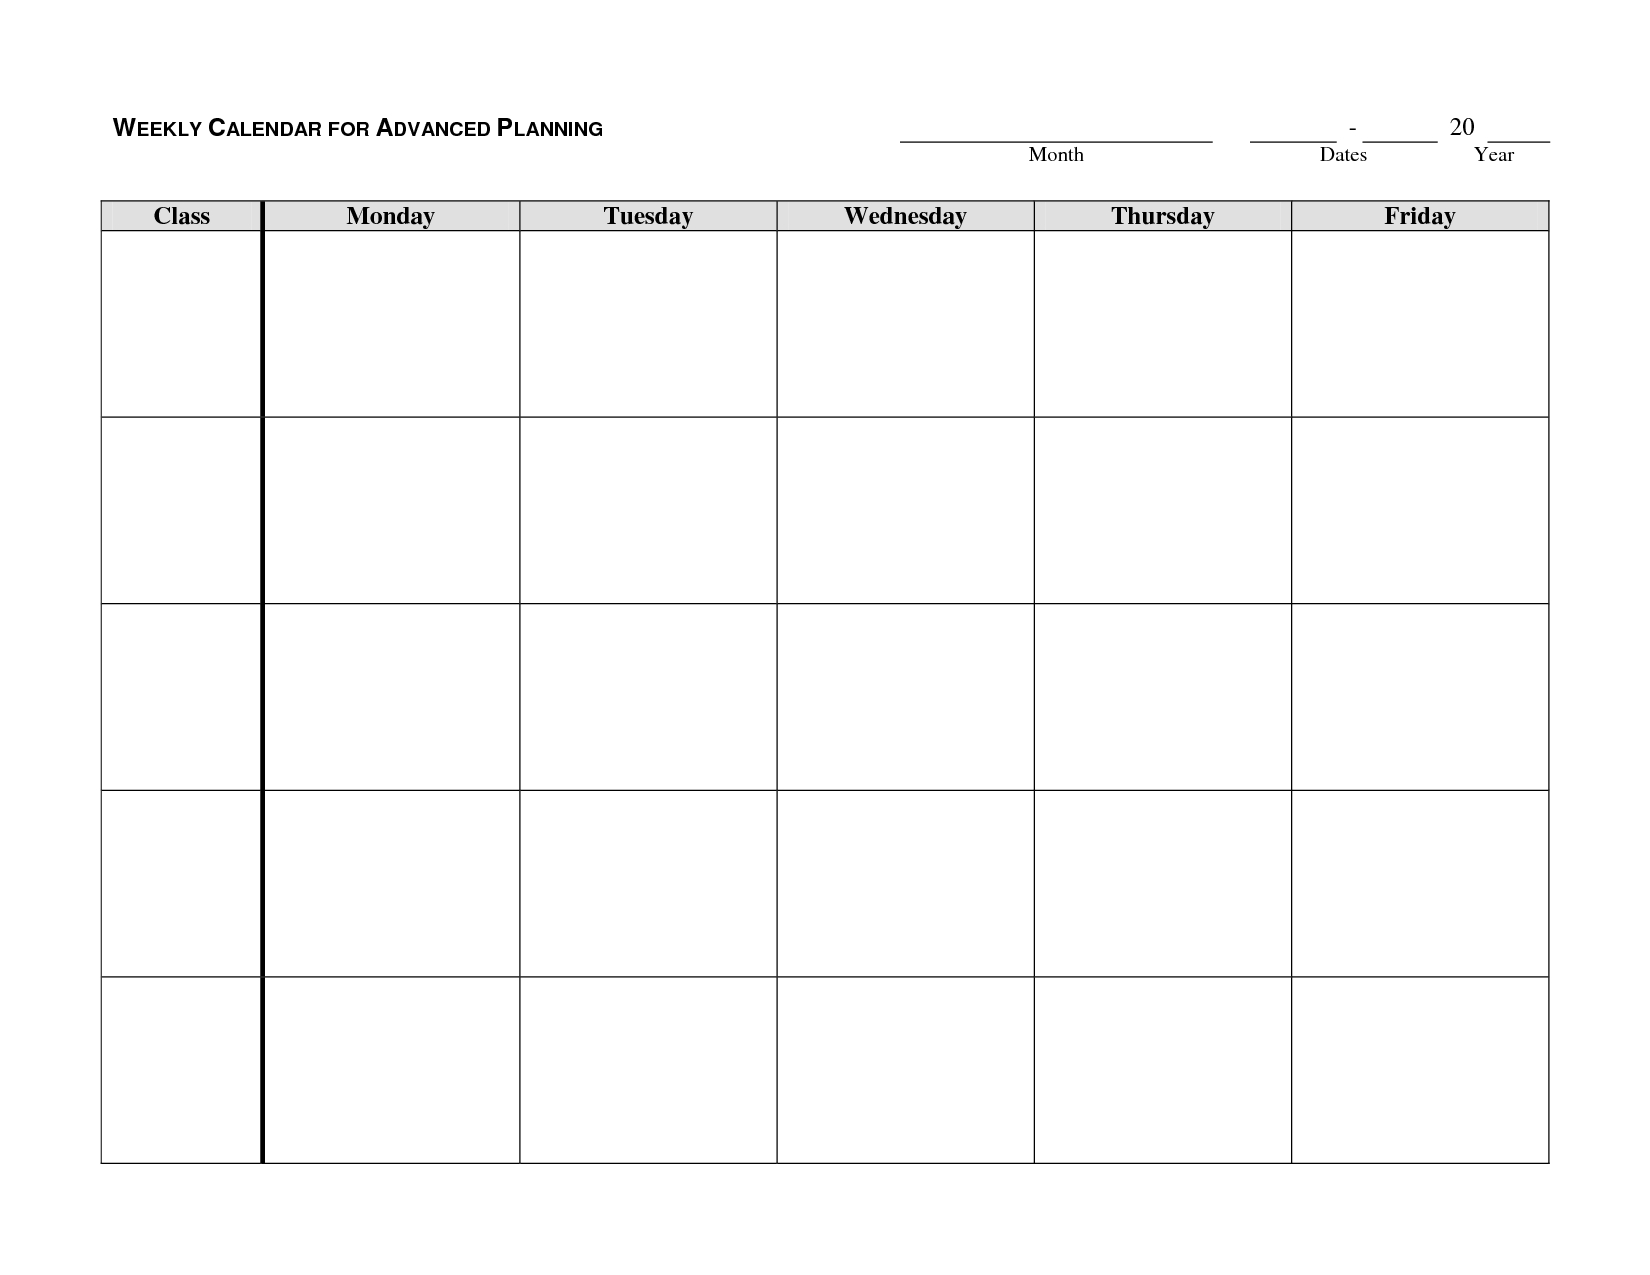 Schedule Template Images Of Week Monday Friday Bfegy Com Thru Sunday with Weekly Agenda Monday Through Friday